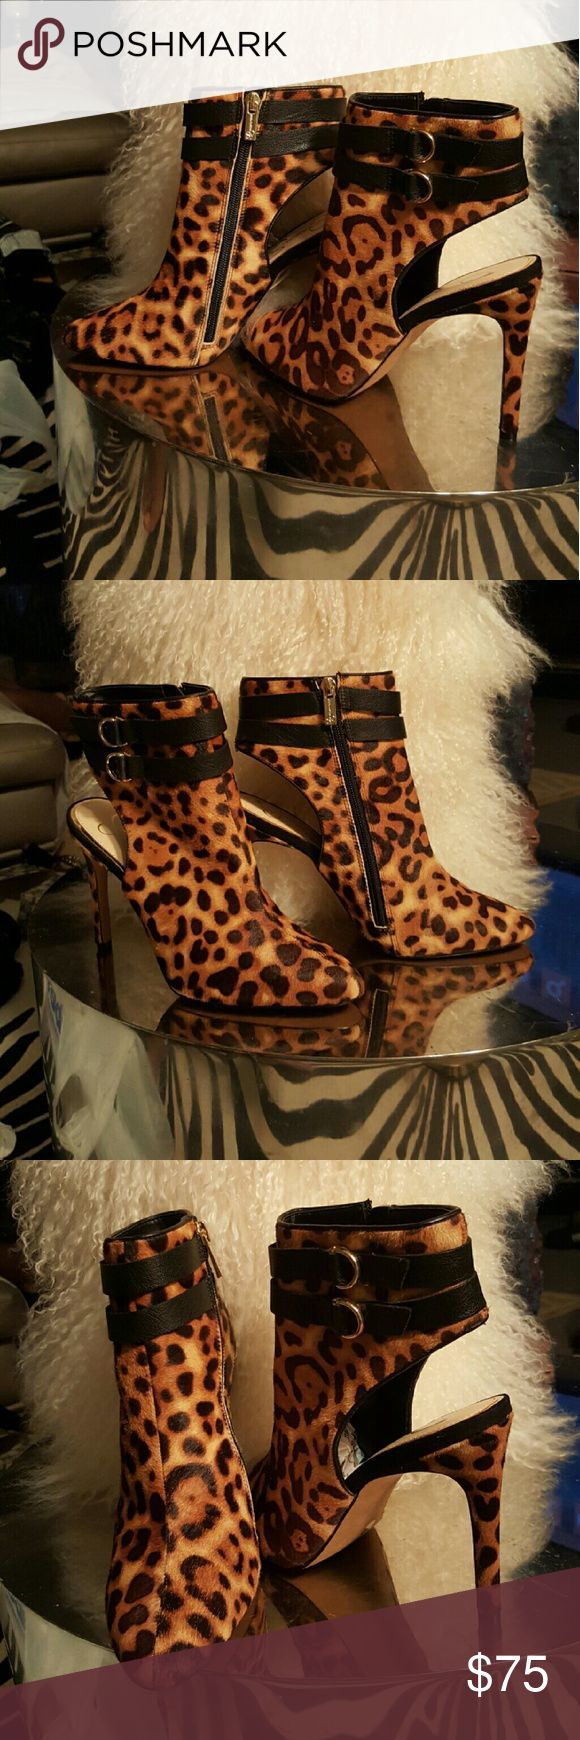 "Jessica Simpson Leopard booties Jessica Simpson Leopard booties. Sweetest! These babies are classic, they go with anything! Heel measures 4.5"". Jessica Simpson Shoes Ankle Boots & Booties"